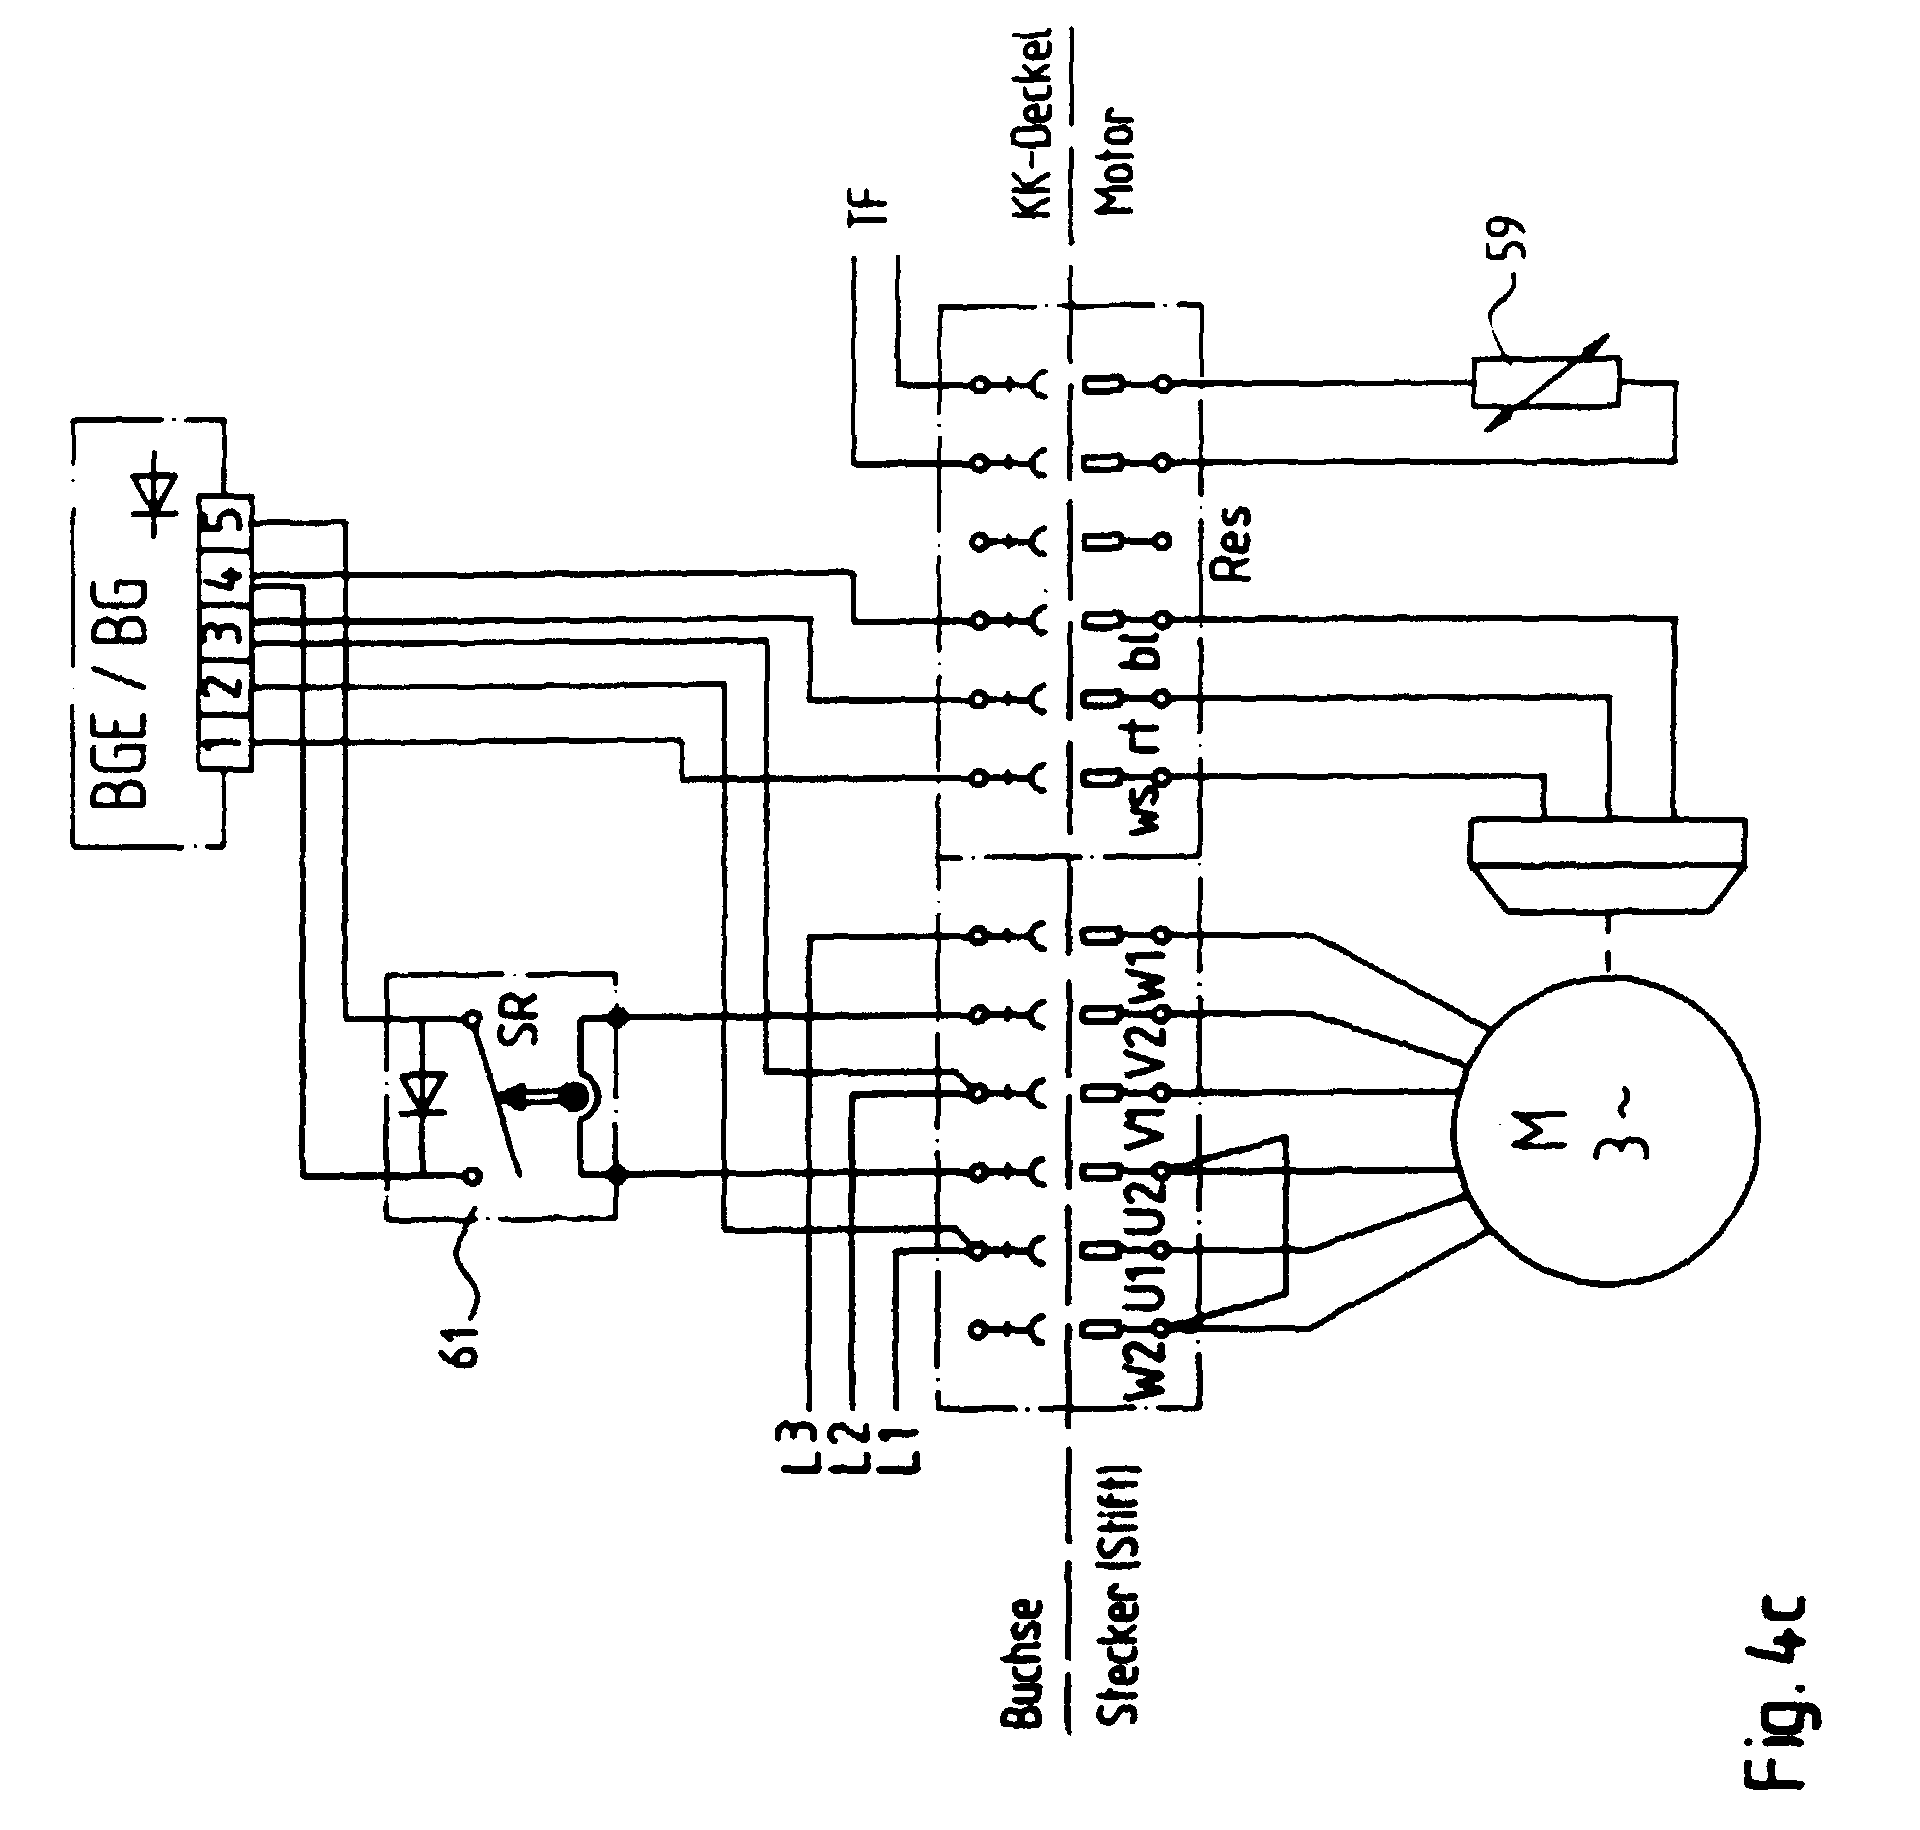 patent ep0582777b1 - motor connection box  in particular for electric motors